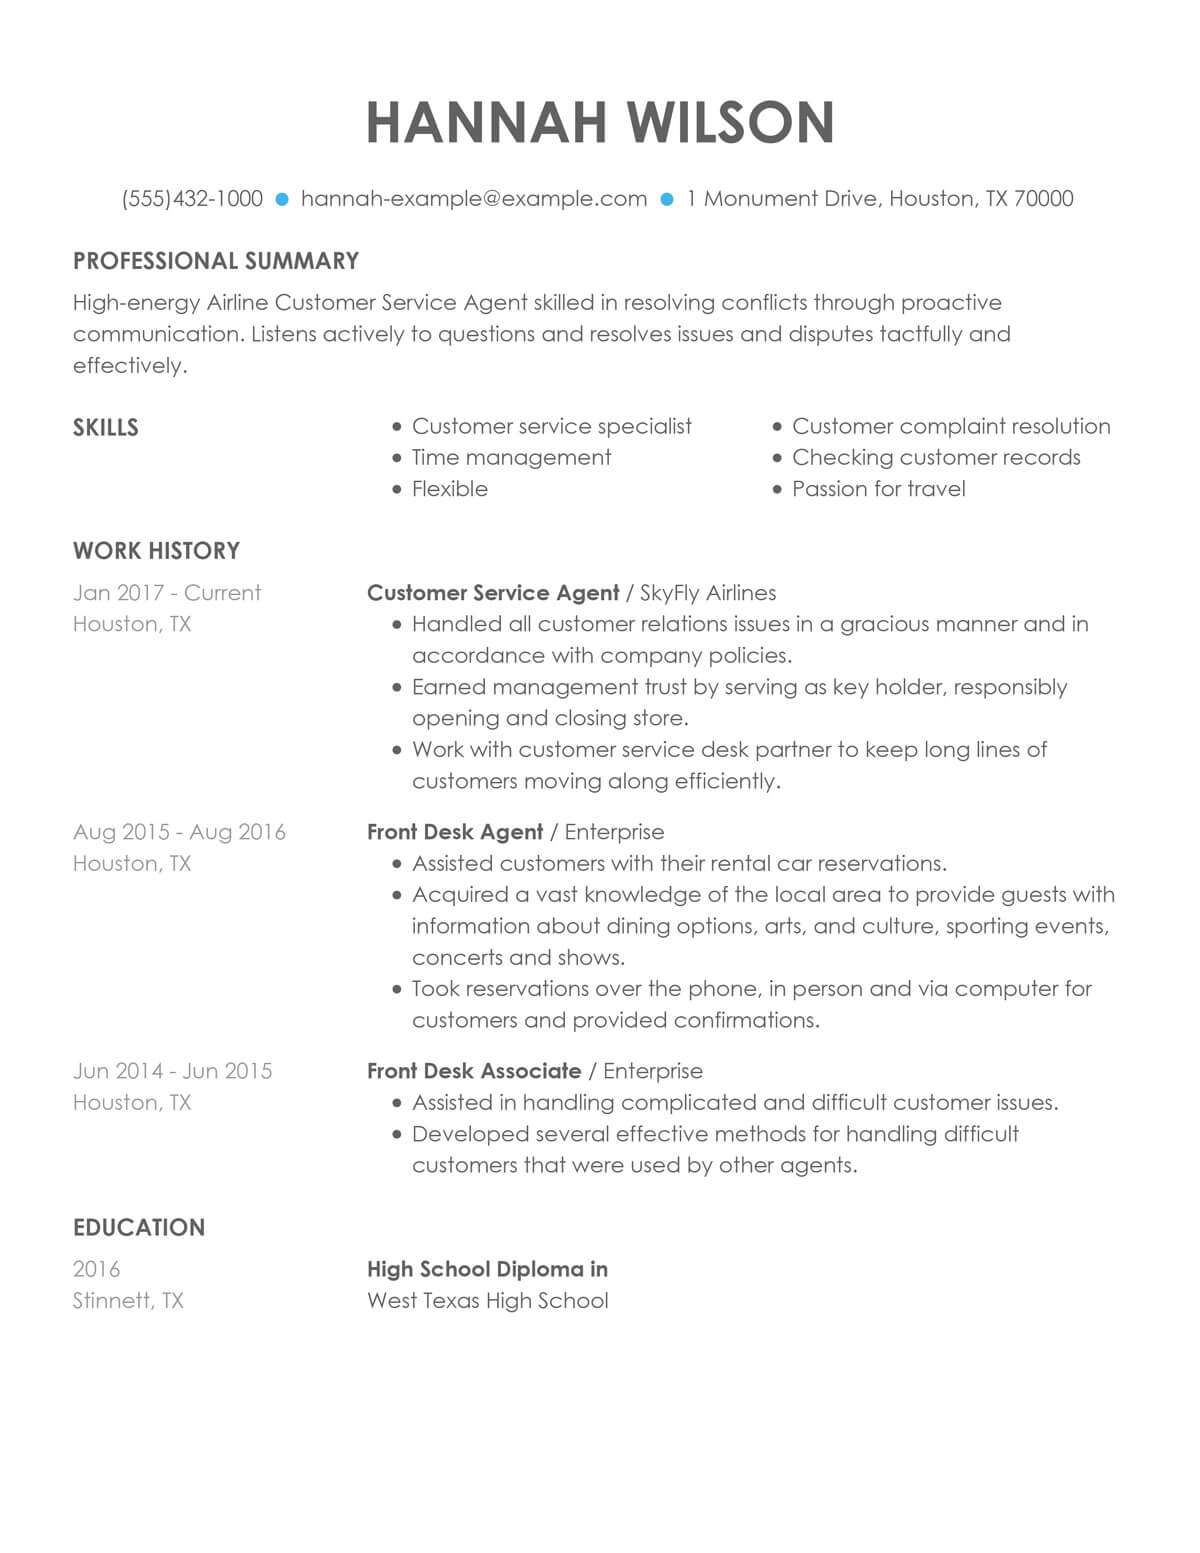 customize our customer representative resume example examples service airline agent Resume Resume Examples 2018 Customer Service